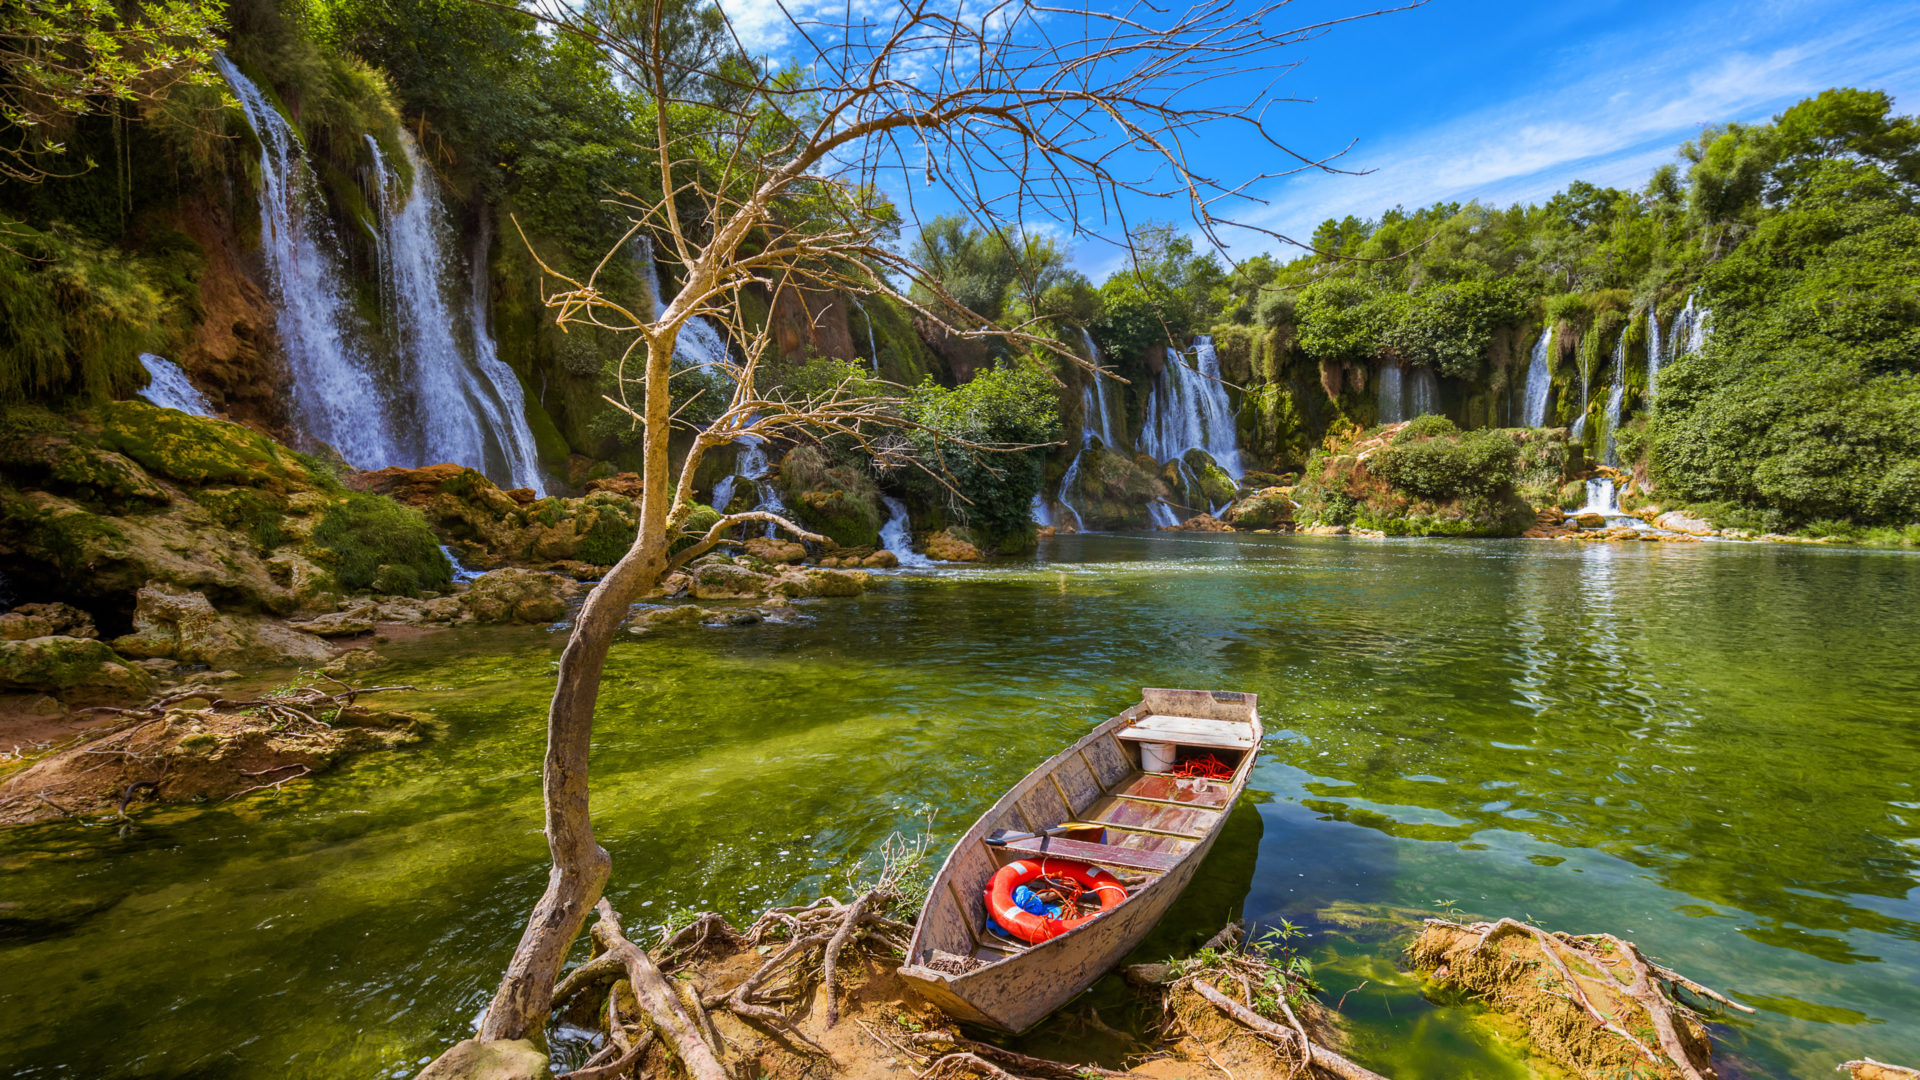 Natural Falls Wallpaper Free Download Waterfall Kravice In Bosnia And Herzegovina Beautiful